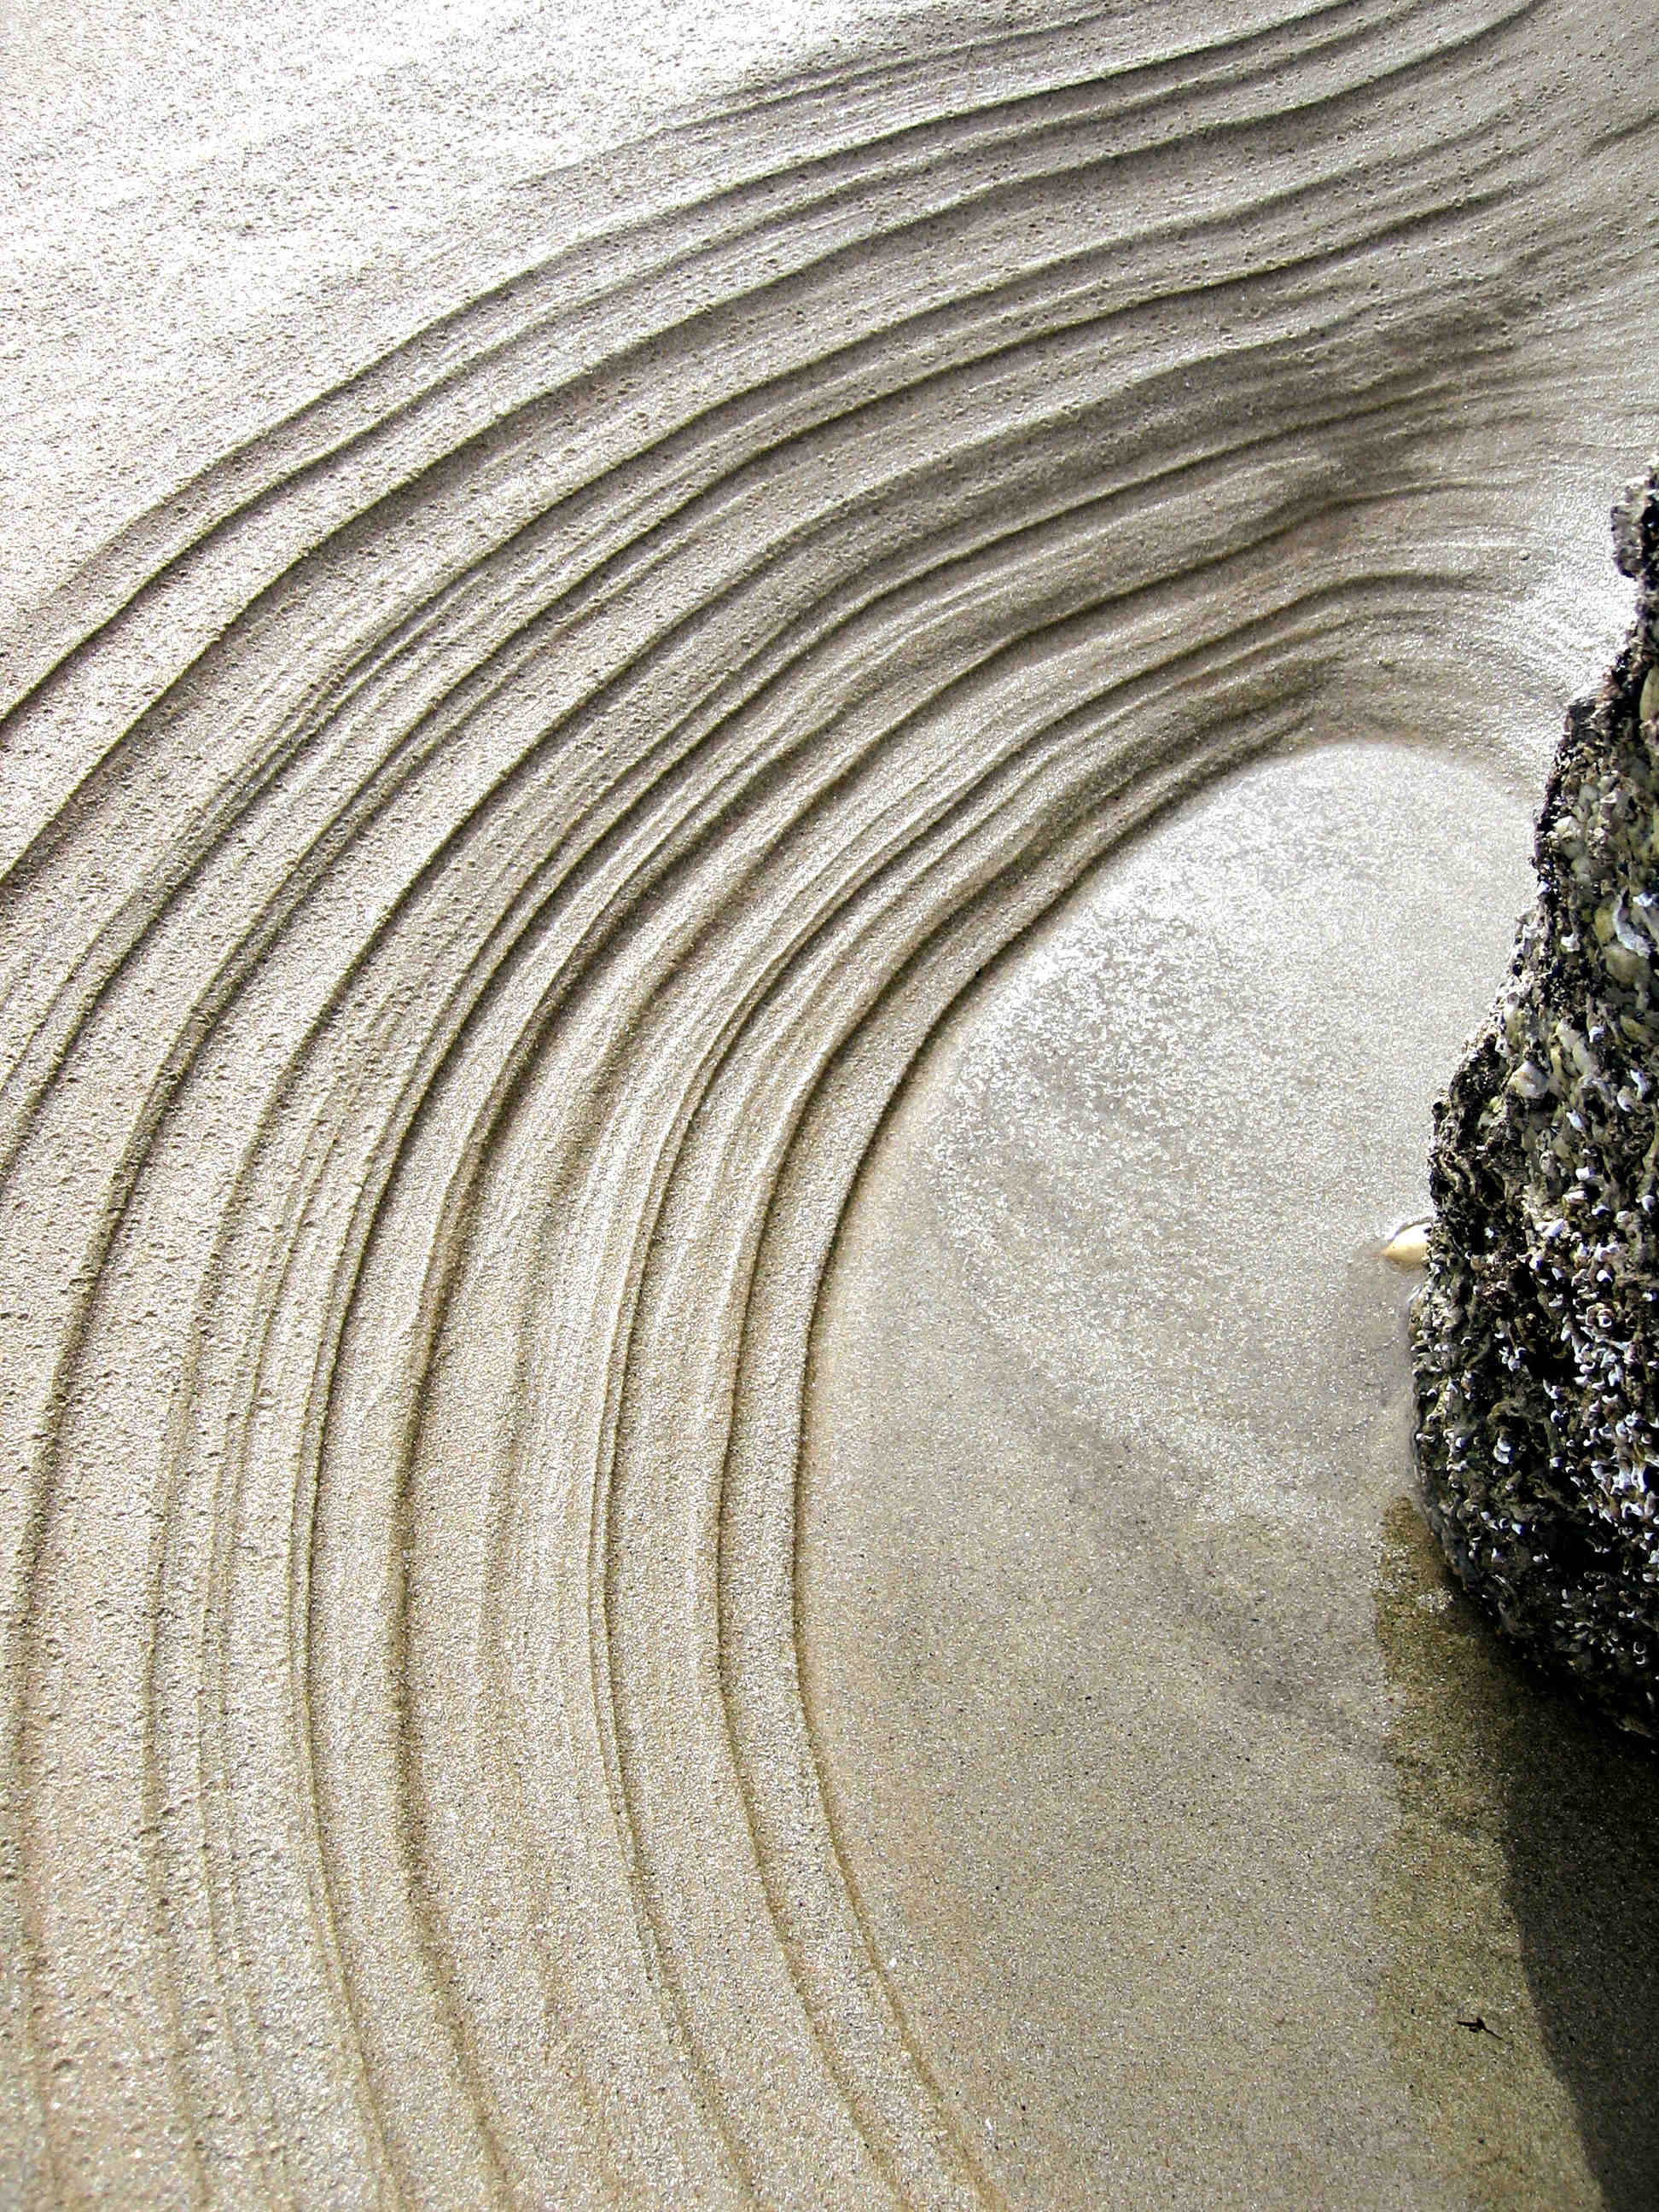 Photo of ripples of sand